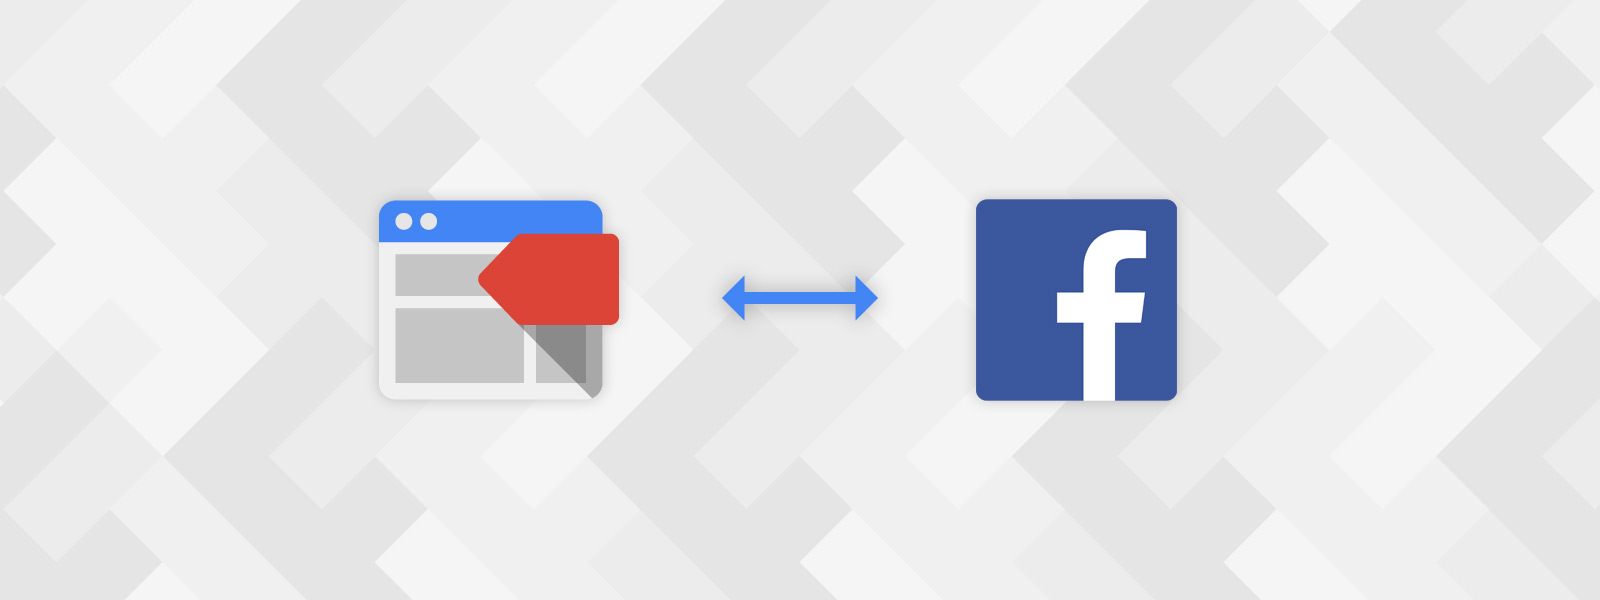 How do I install the Facebook pixel with Google Tag Manager?